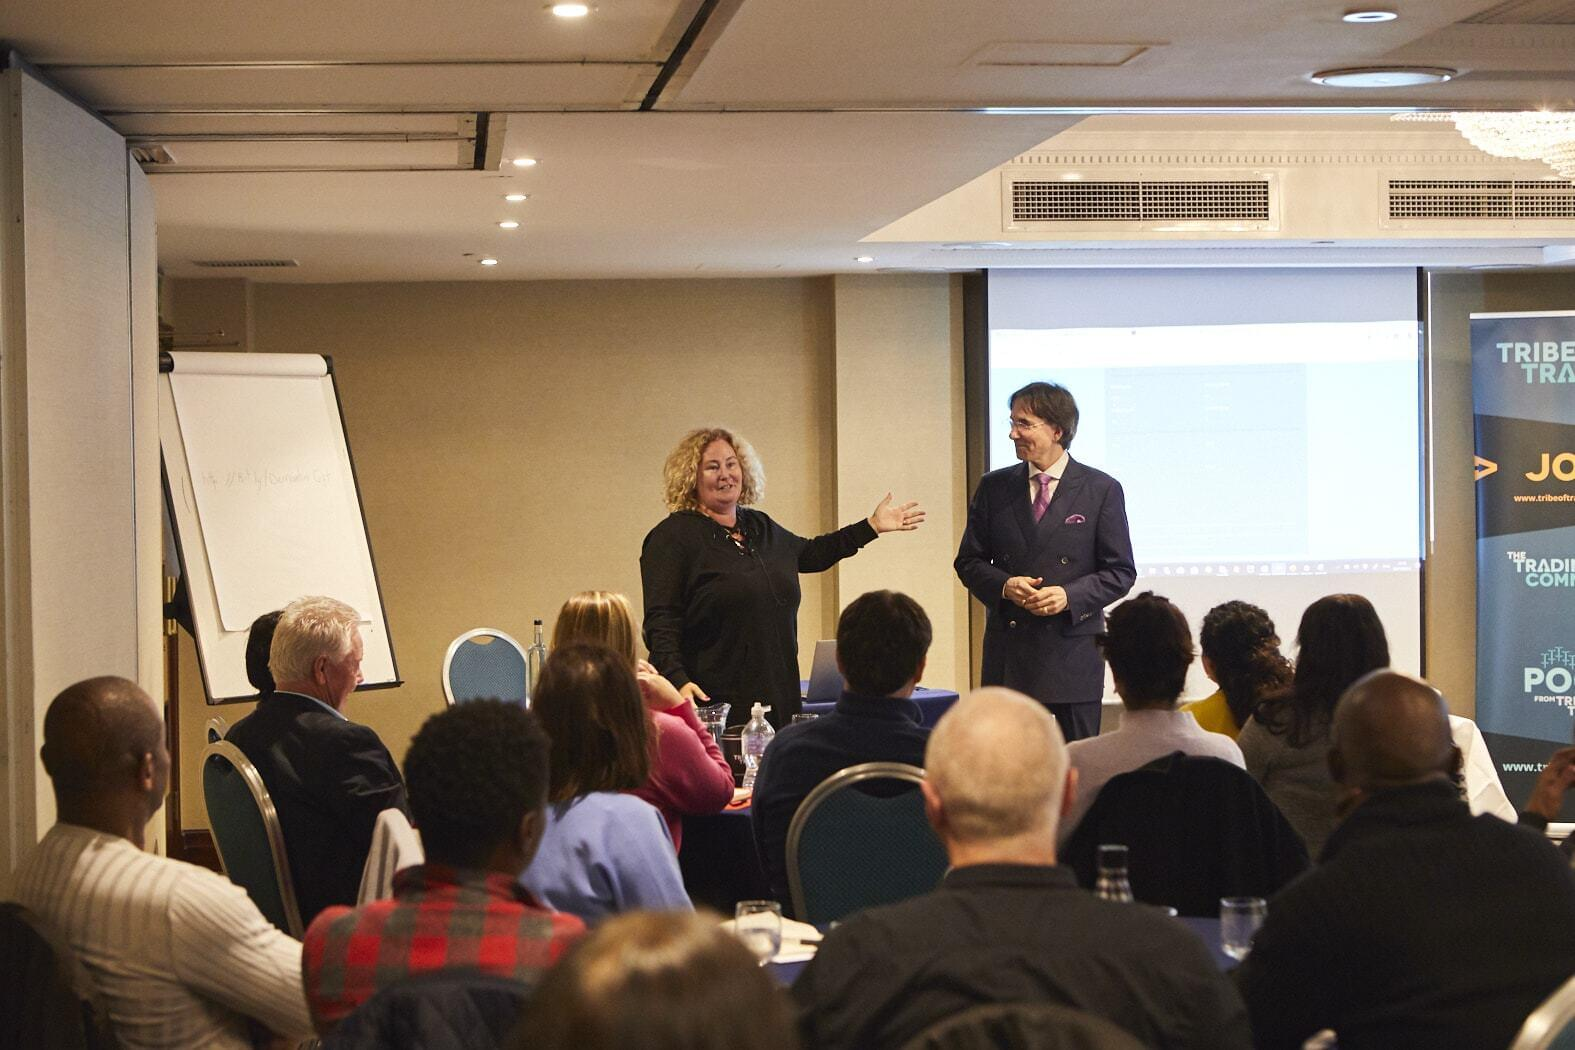 On stage with JudyVee and Dr John Demartini